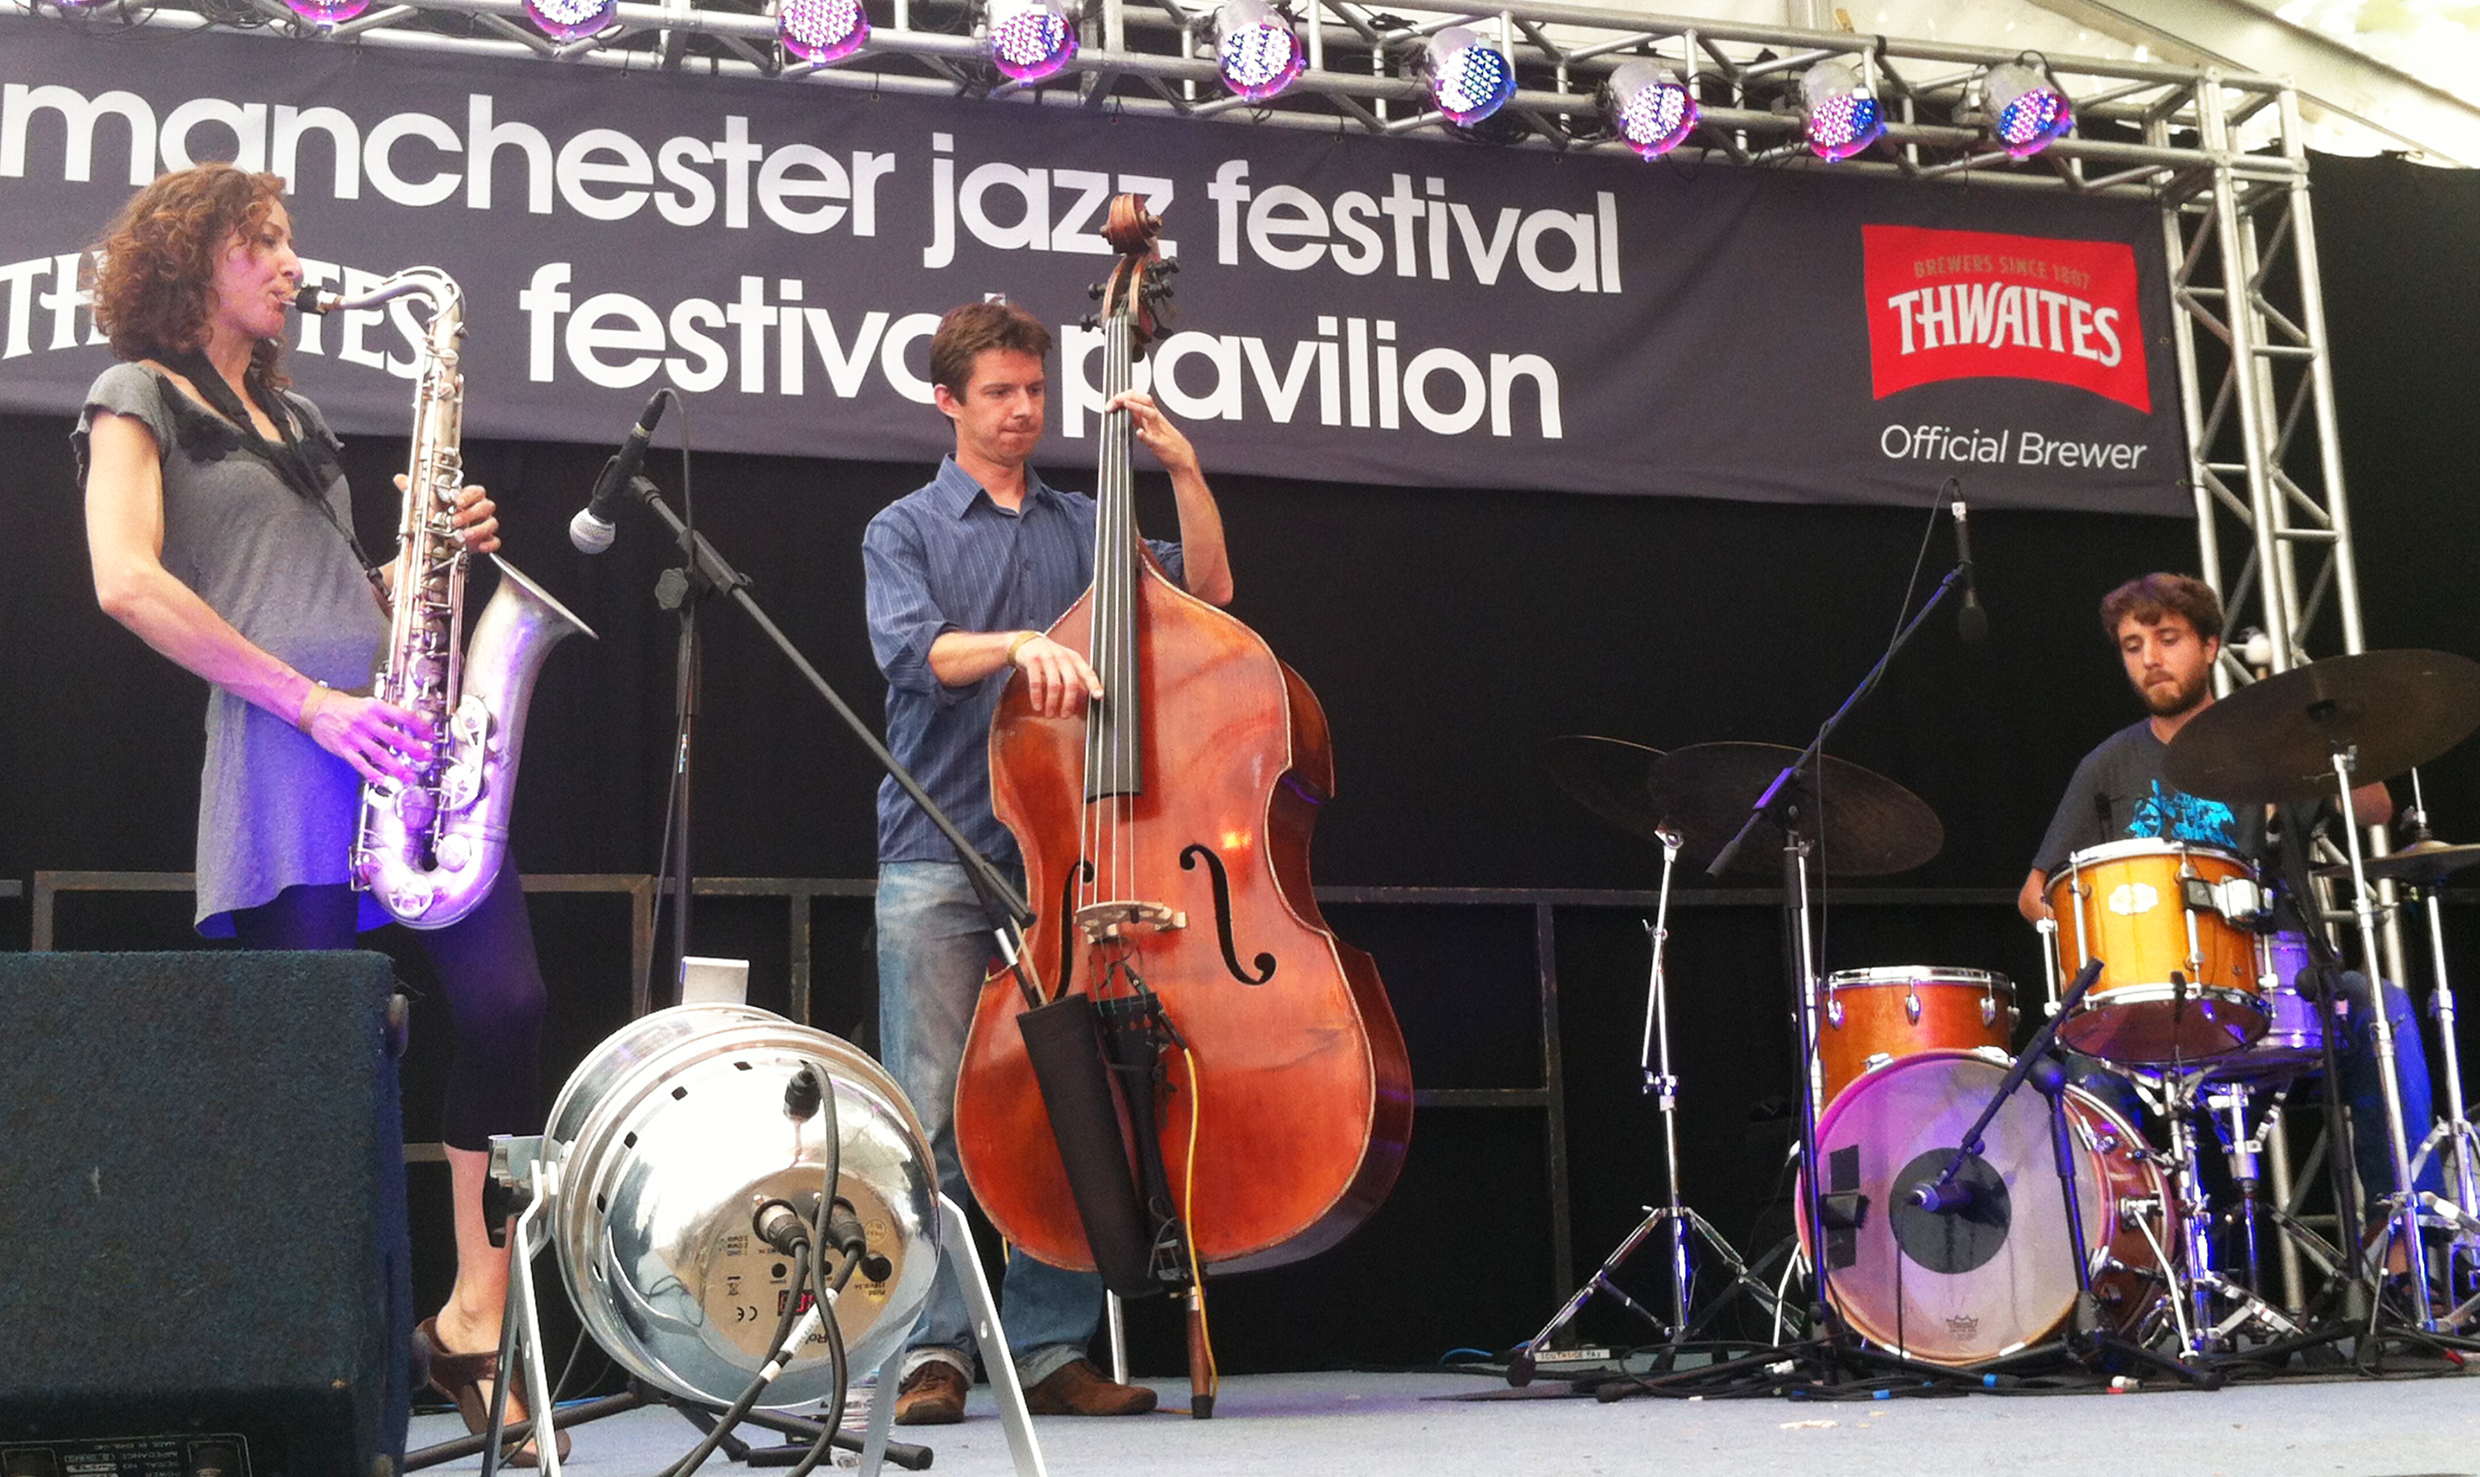 At Manchester Jazz Festival (courtesy of Adrian Pallant)